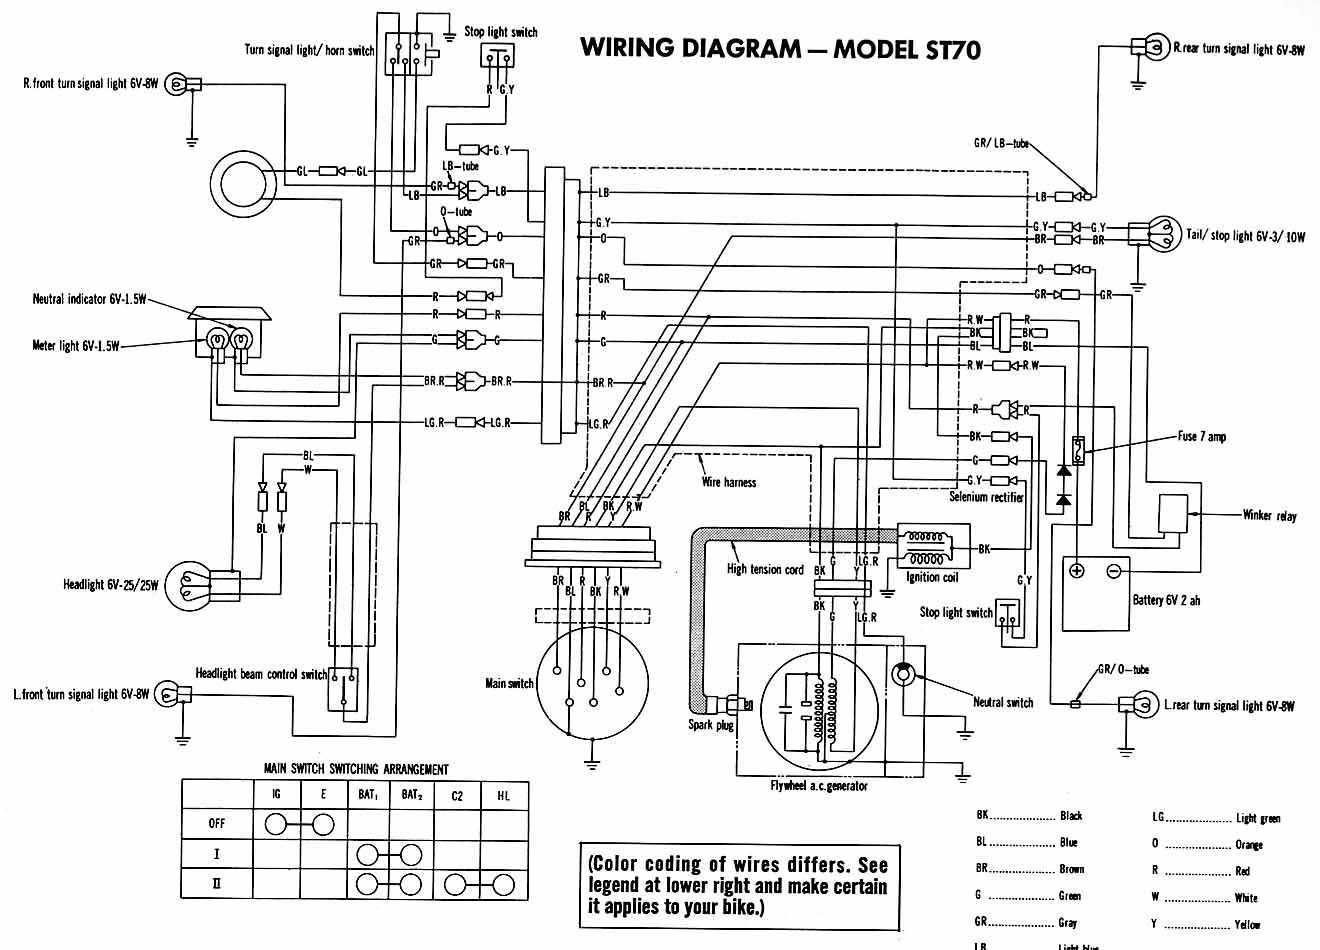 Eton Viper 90 2 Stroke Wiring Diagram Jr 40cc Ignition Additionally Together With